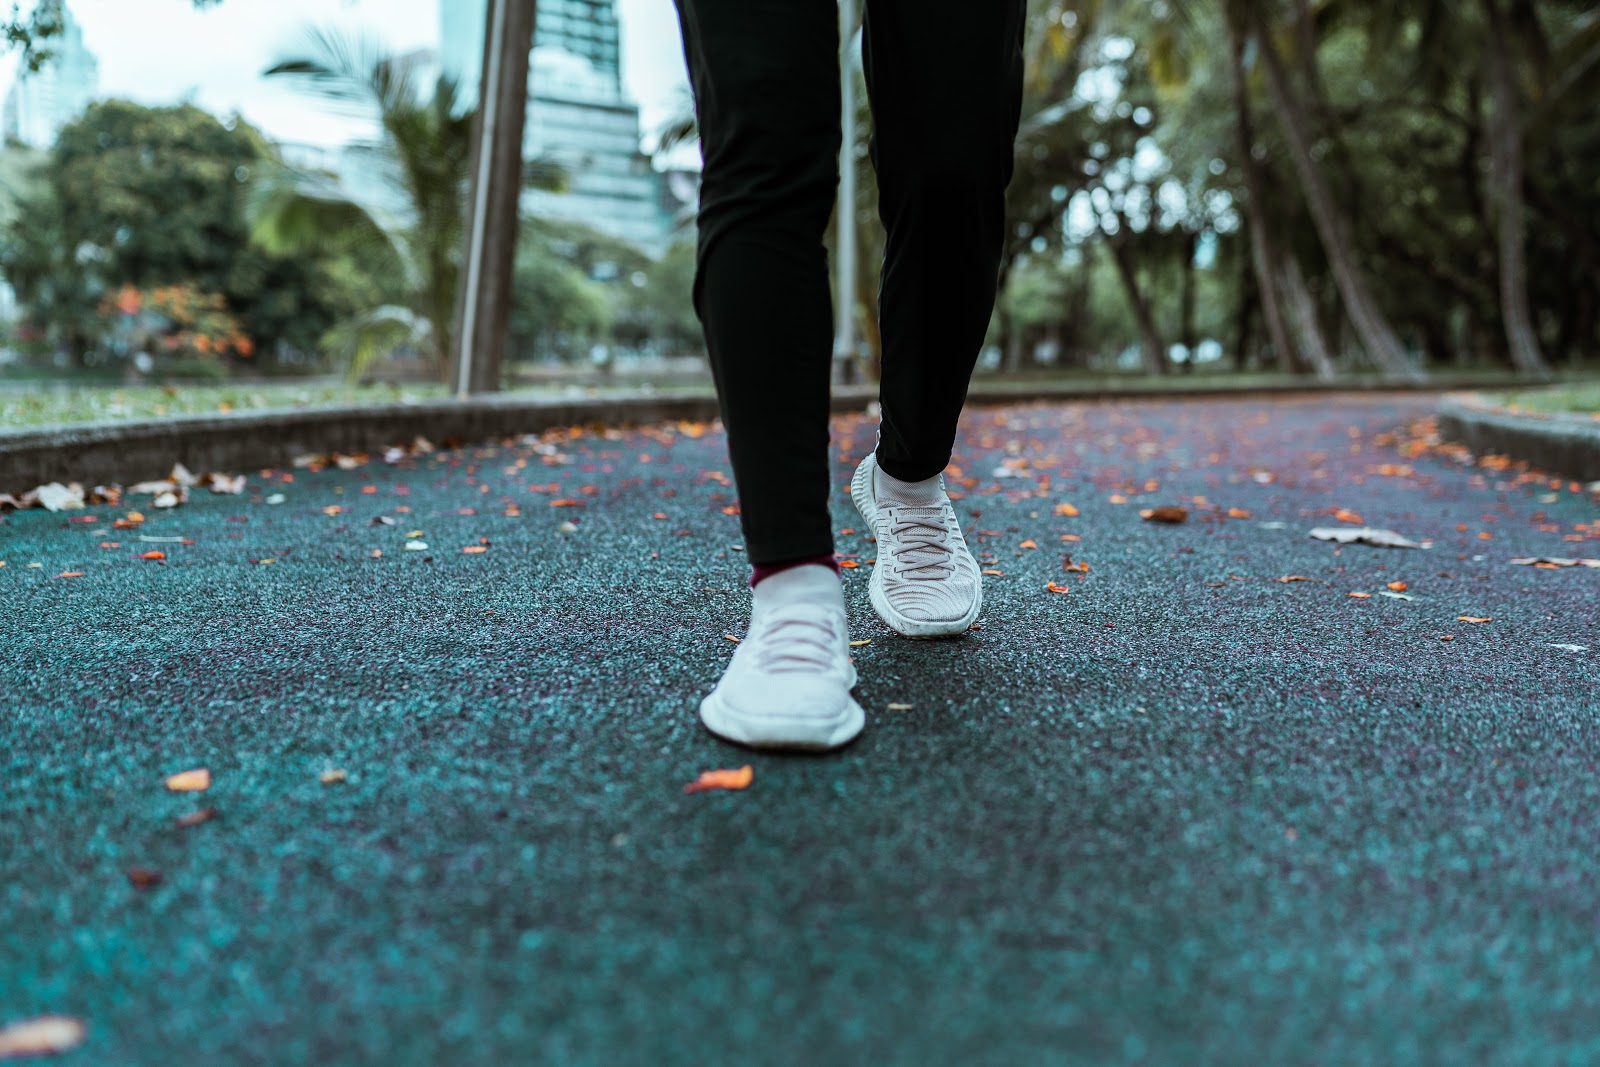 white sneakers jogging on an asphalt walkway in a park